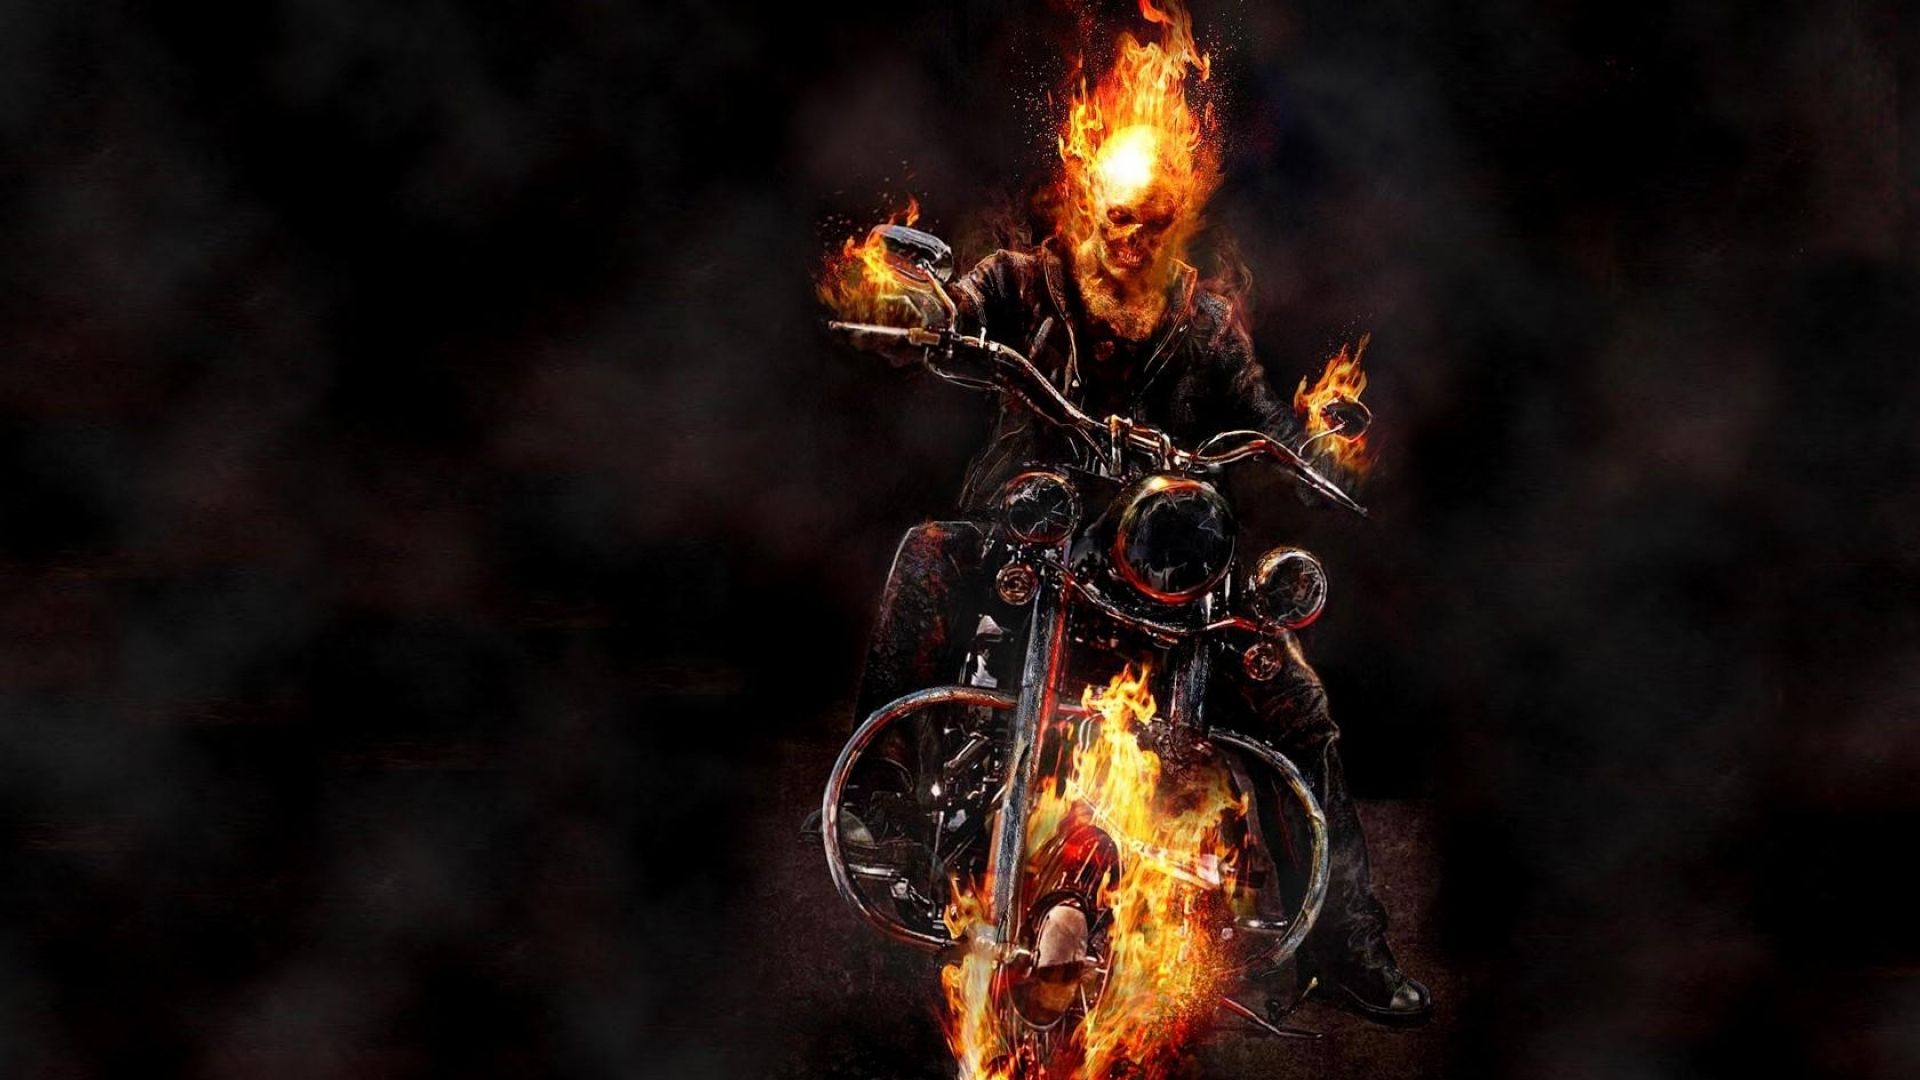 Top Wallpaper Horse Ghost Rider - 412d432814f719d96ea403287c358067  Perfect Image Reference_983283.jpg